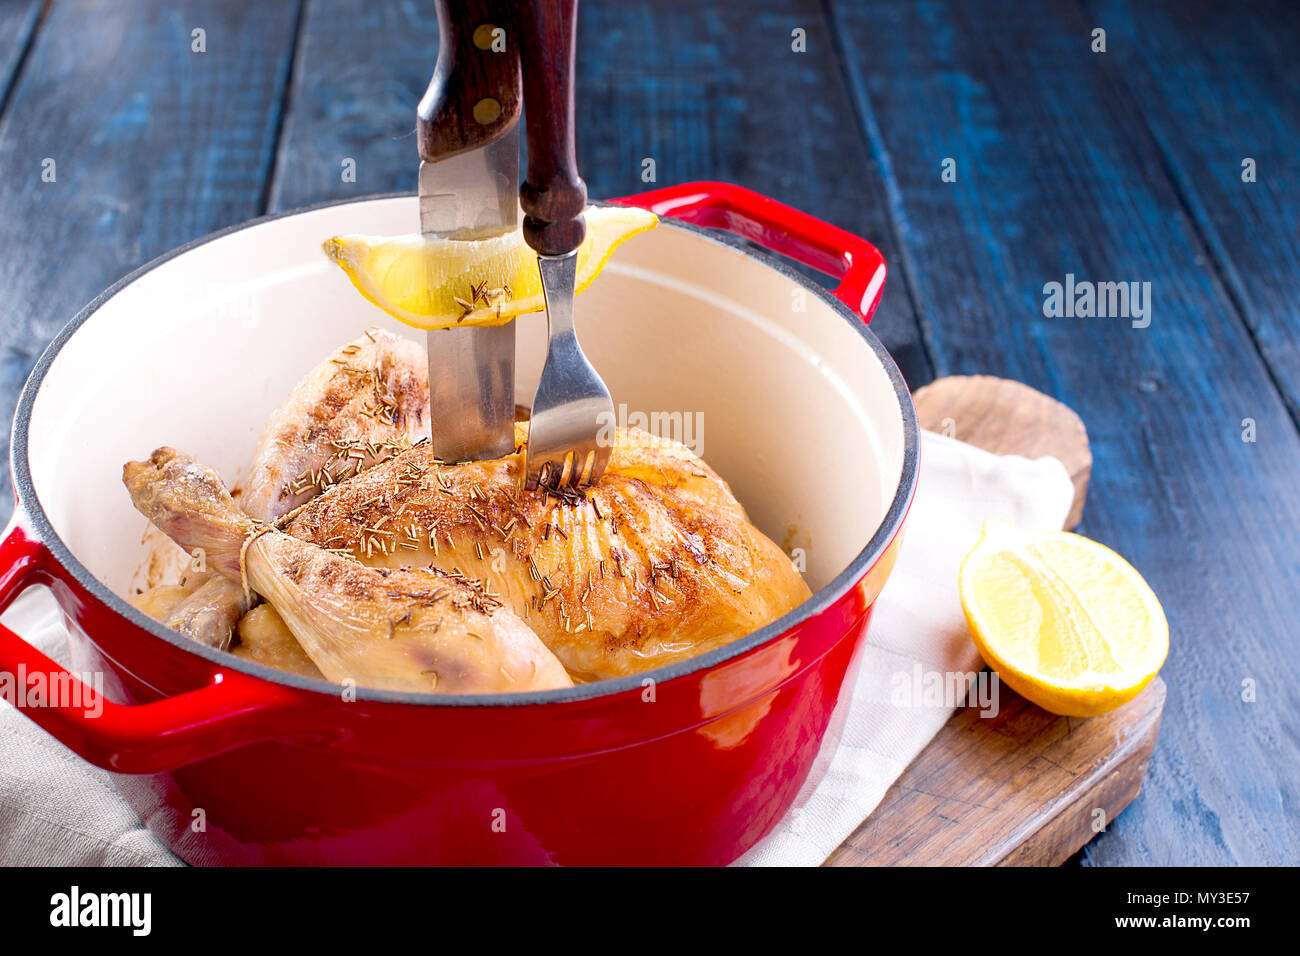 a cast-iron pot and a golden chicken with lemon and rosemary from the oven. Delicious family dinner. Place for text. copy space. Stock Photo